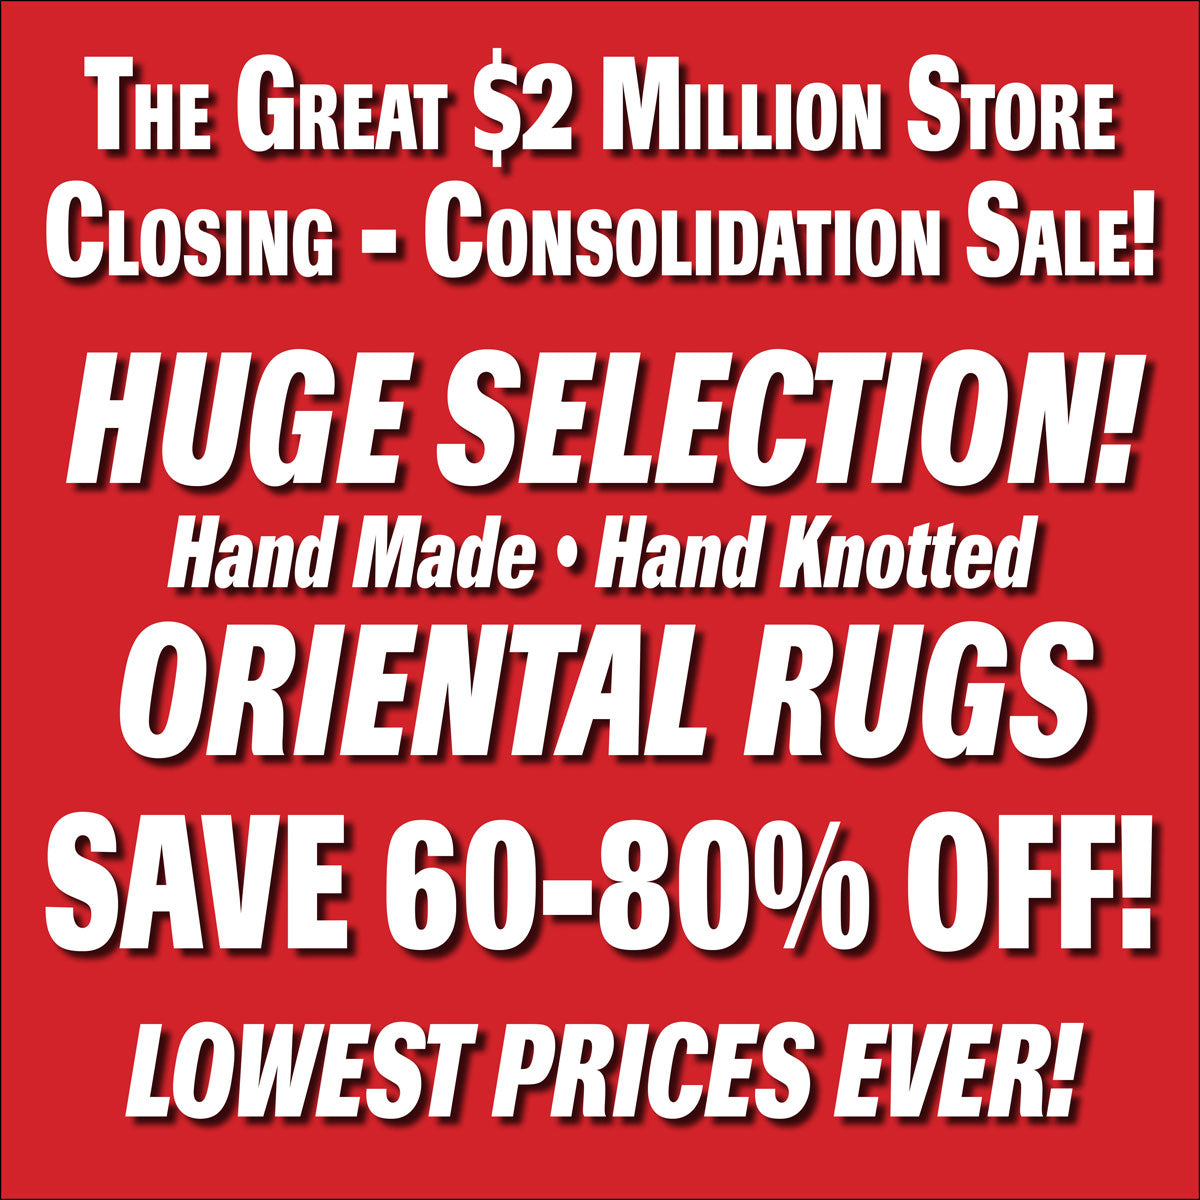 Store Closing Sale - 60-80% Off - Lowest Prices Ever - In Store Only